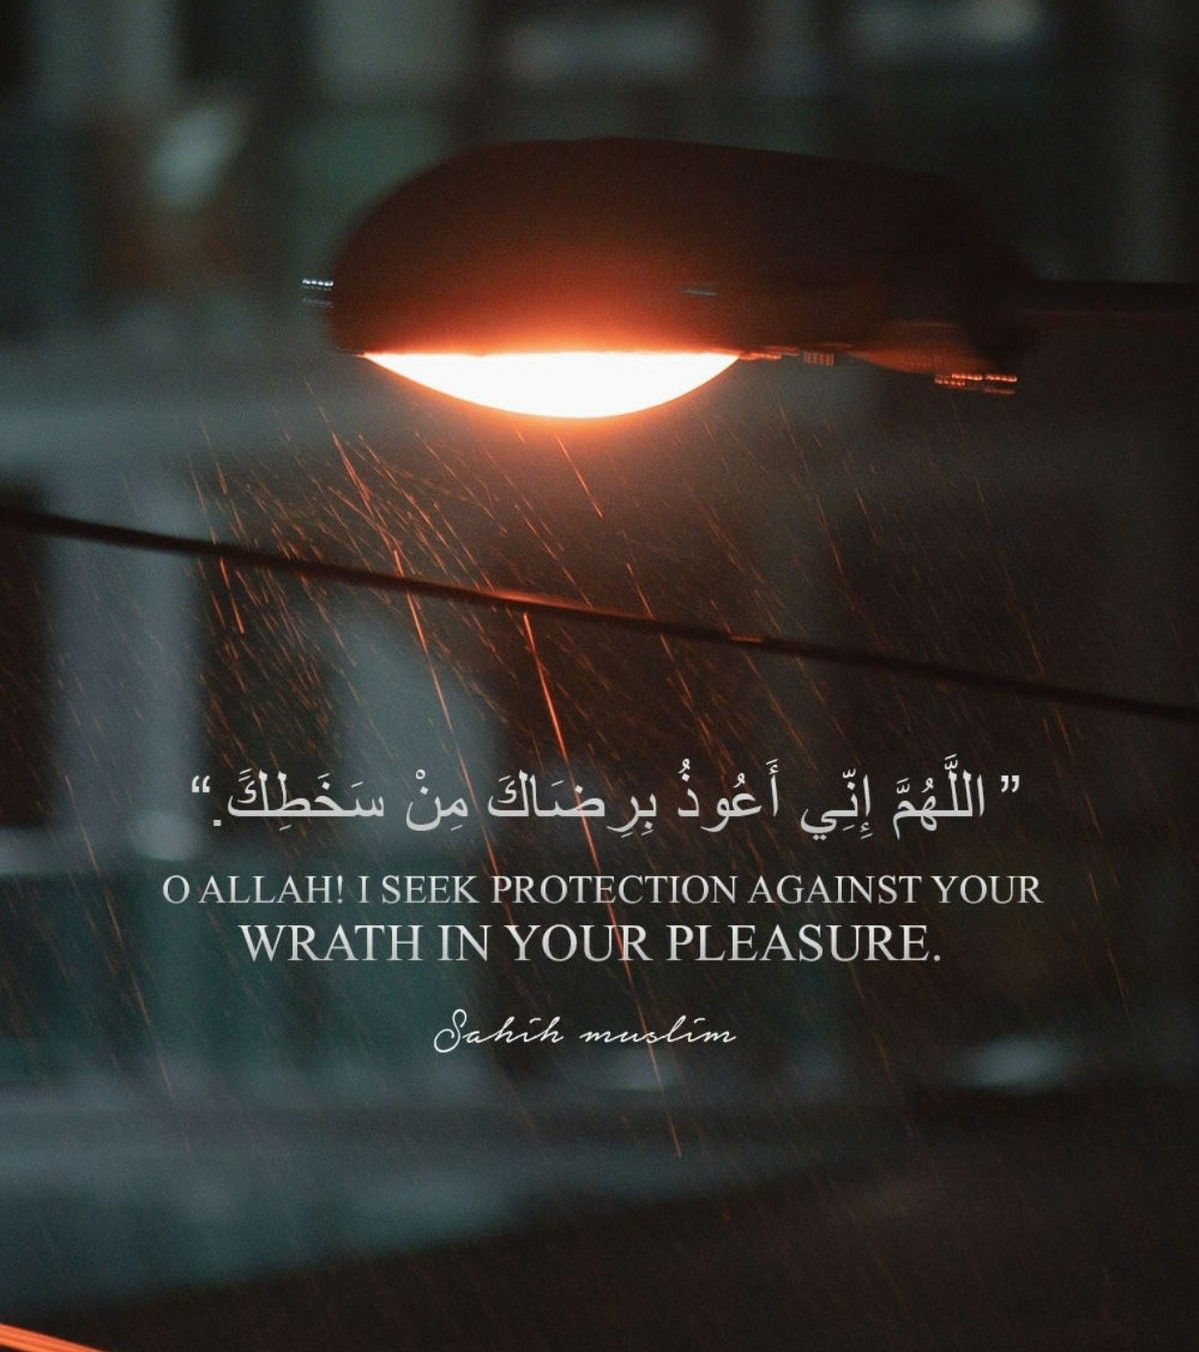 Pin By Deenoverdunya On Islamic Quotes Deen Over Dunya Muslim Words Islamic Inspirational Quotes Quran Quotes Verses